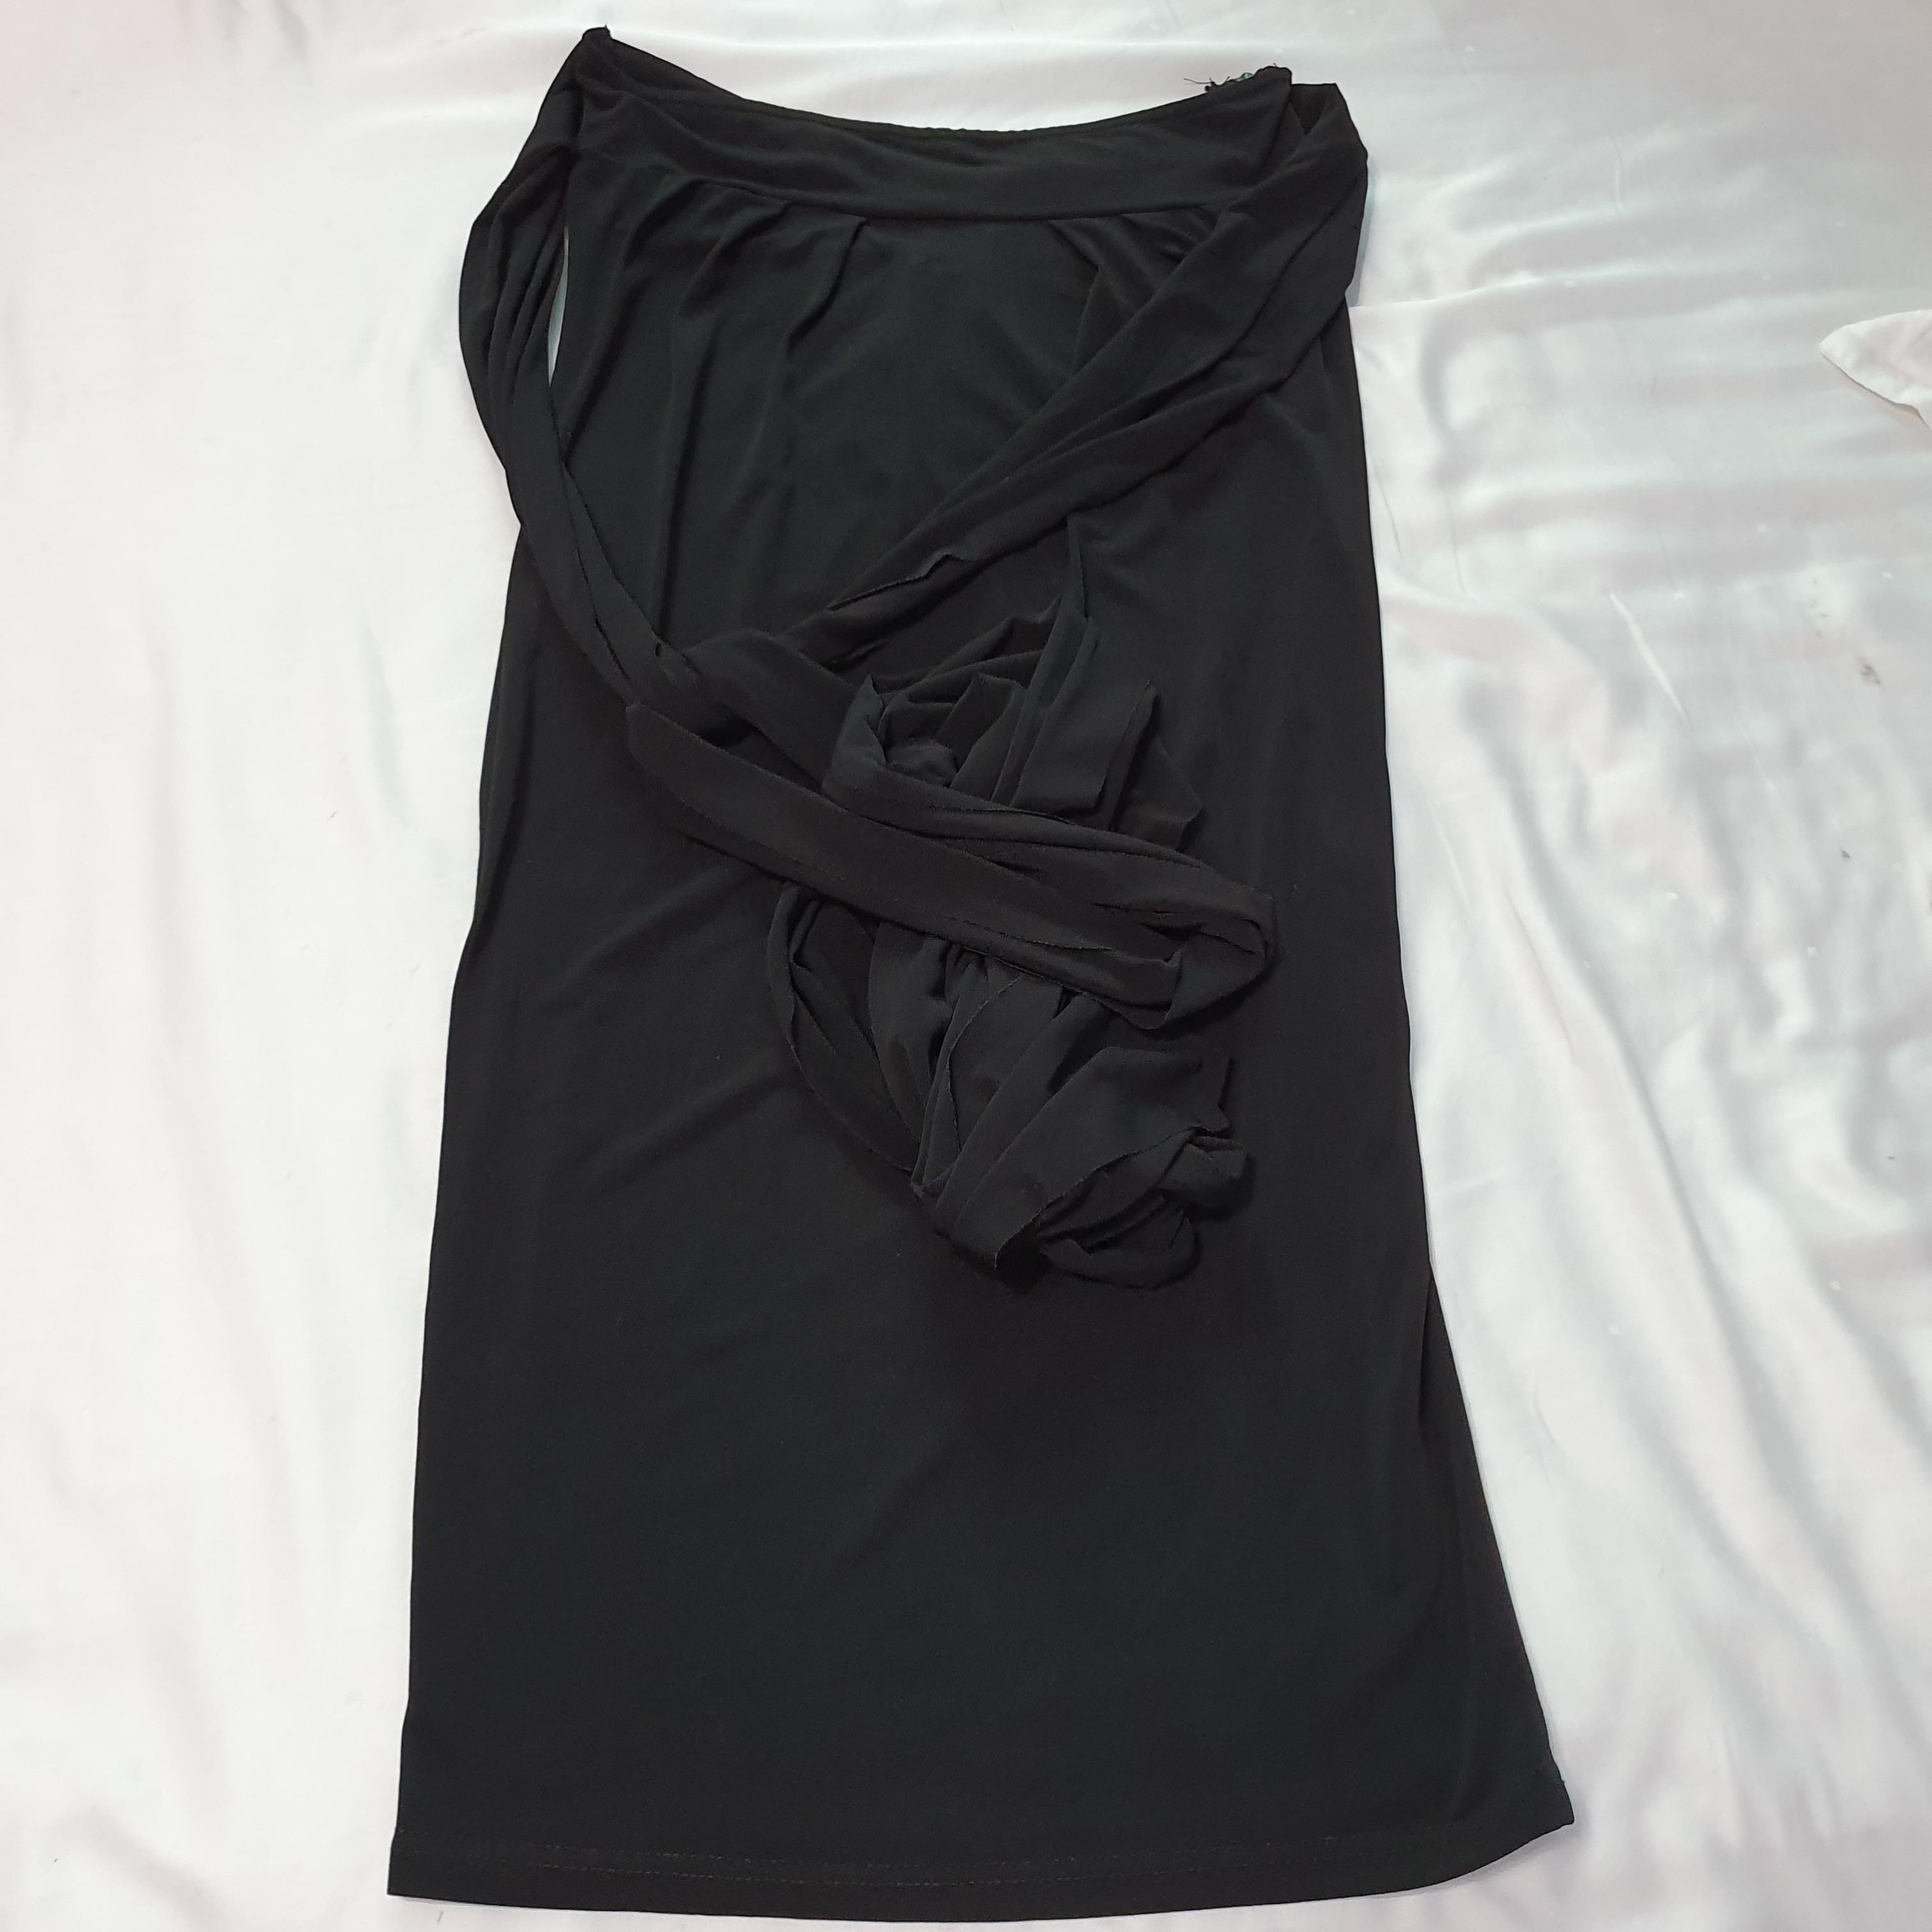 Convertible Dress Women S Fashion Clothes Dresses Skirts On Carousell